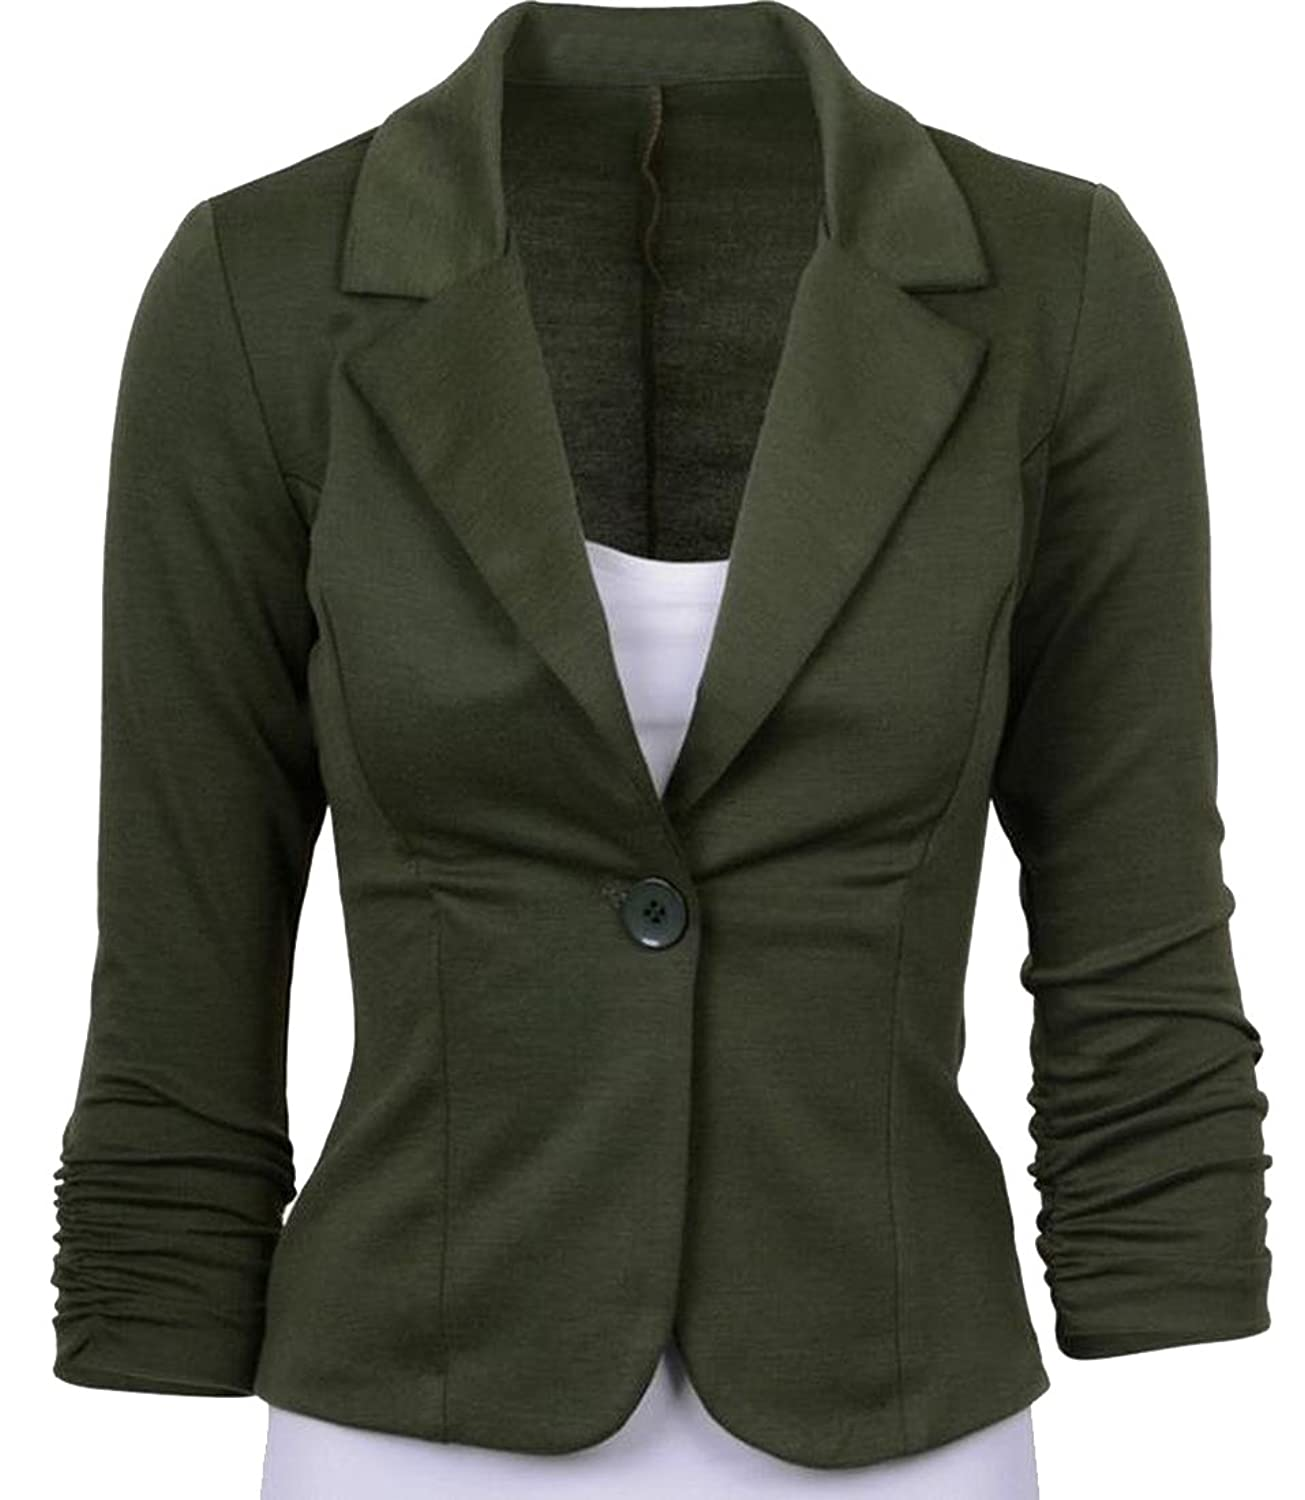 Abetteric Women's Basic Blazer Long Sleeve Suit Jacket Blazer